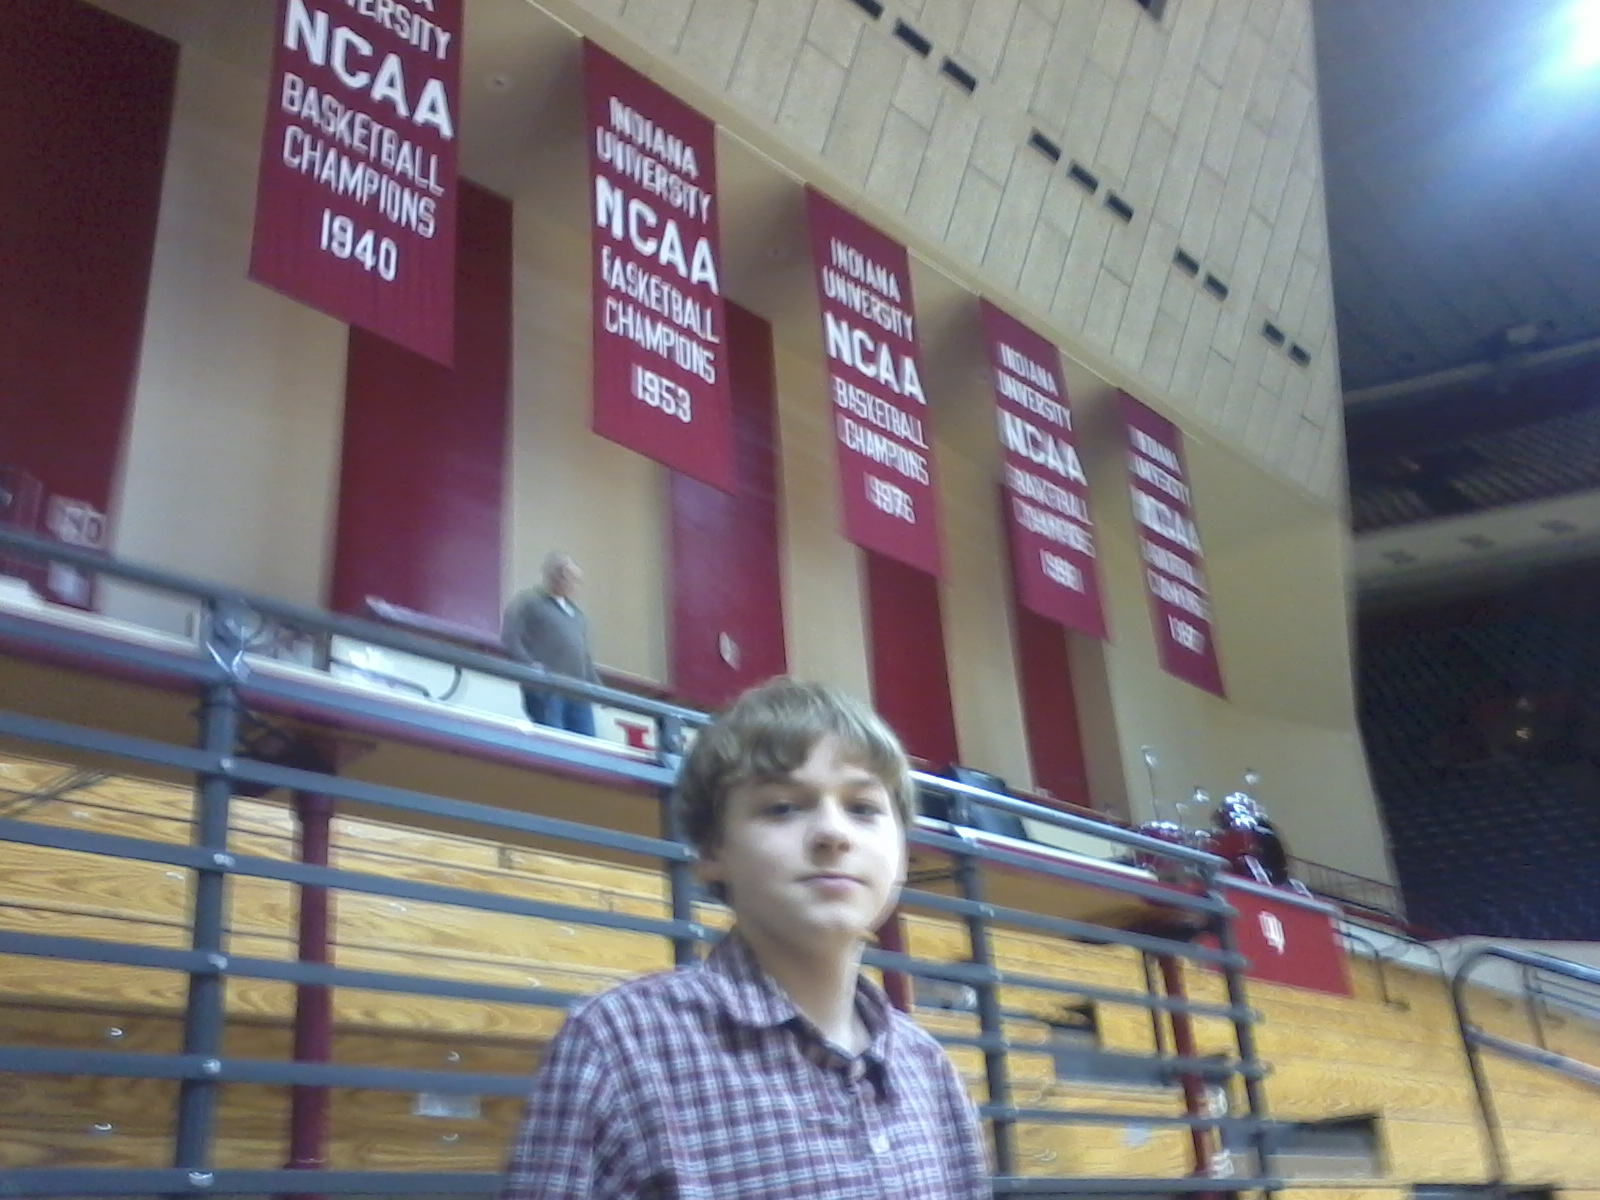 Aiden and the 5 National Championship banners hanging at Indiana University